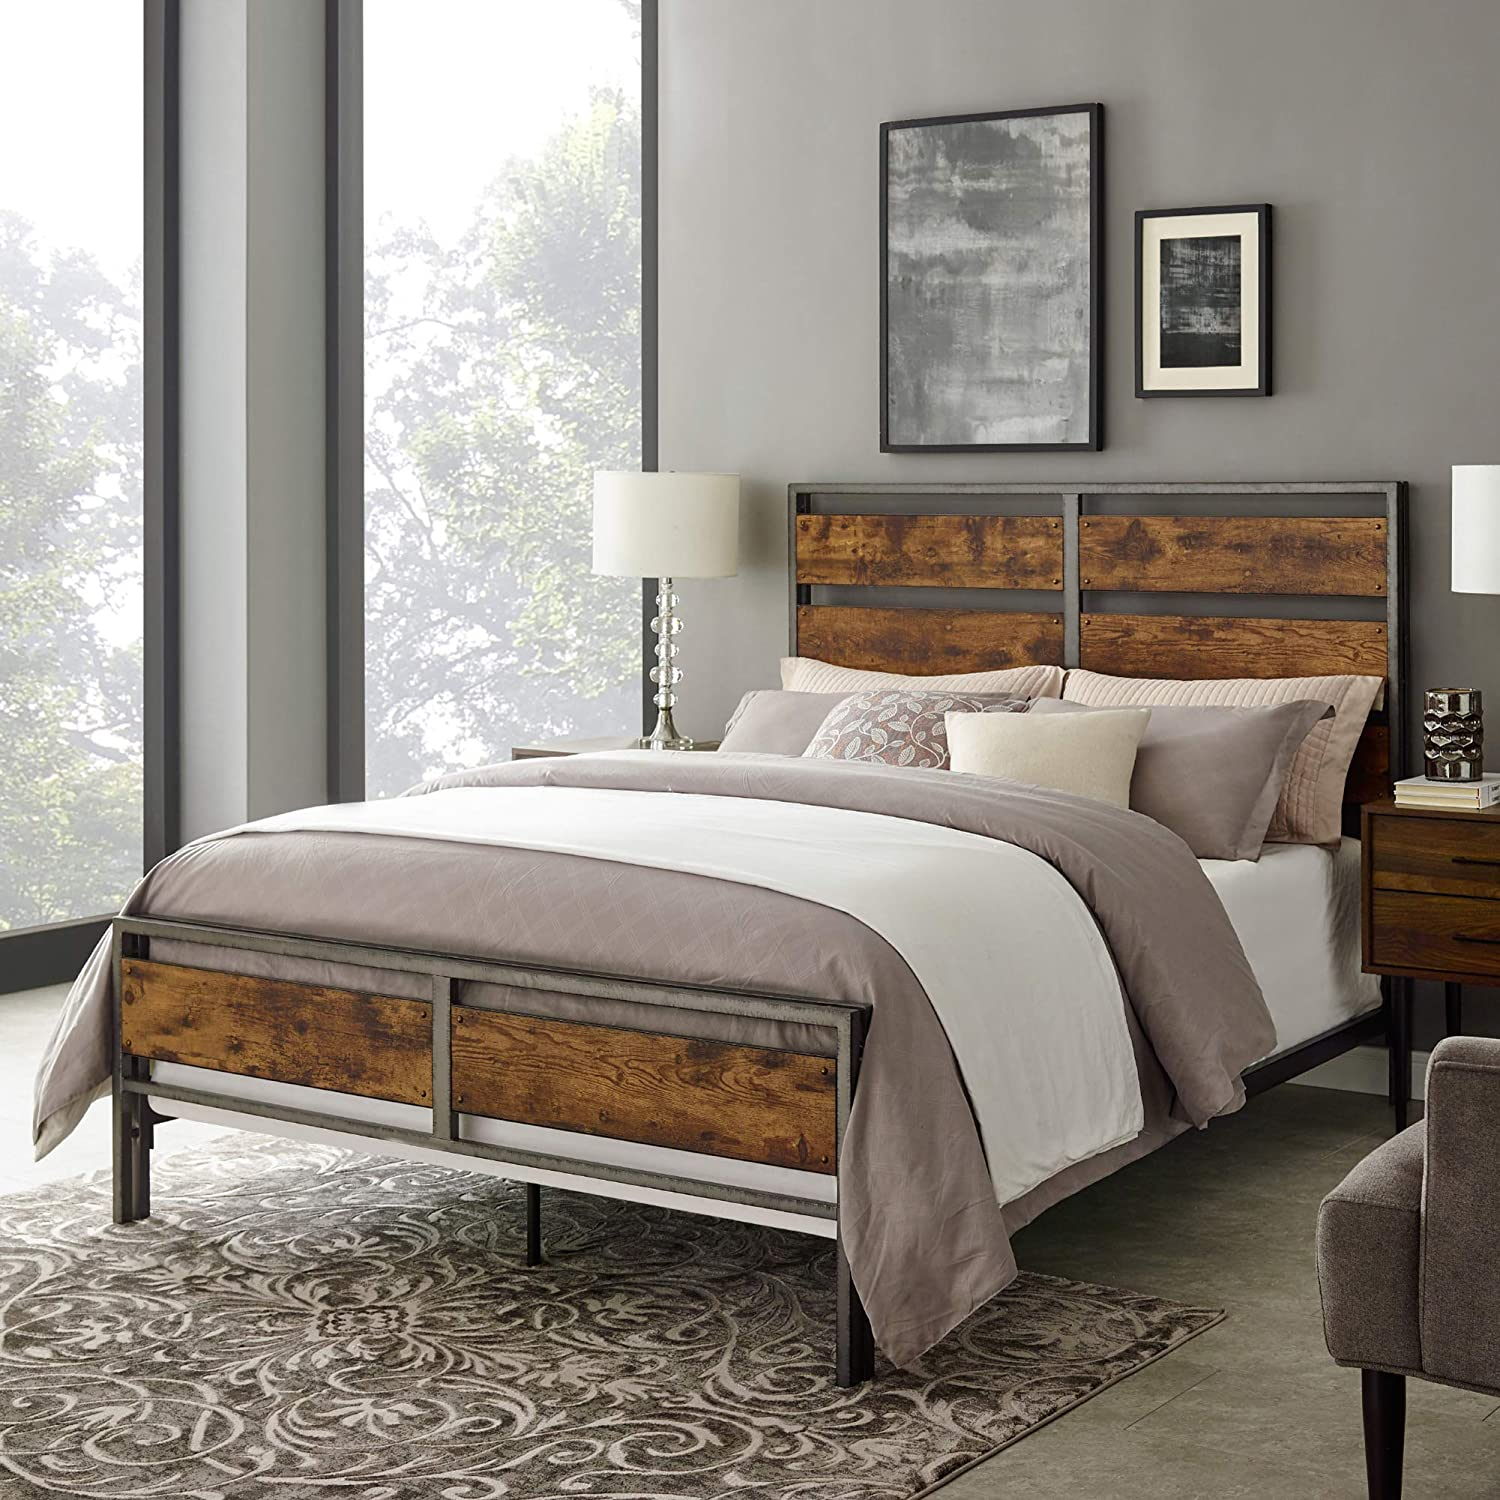 WE Furniture AZQSLRW Wood Plank Metal Queen Size Bed Frame Bedroom, Queen,  Brown Reclaimed Wood